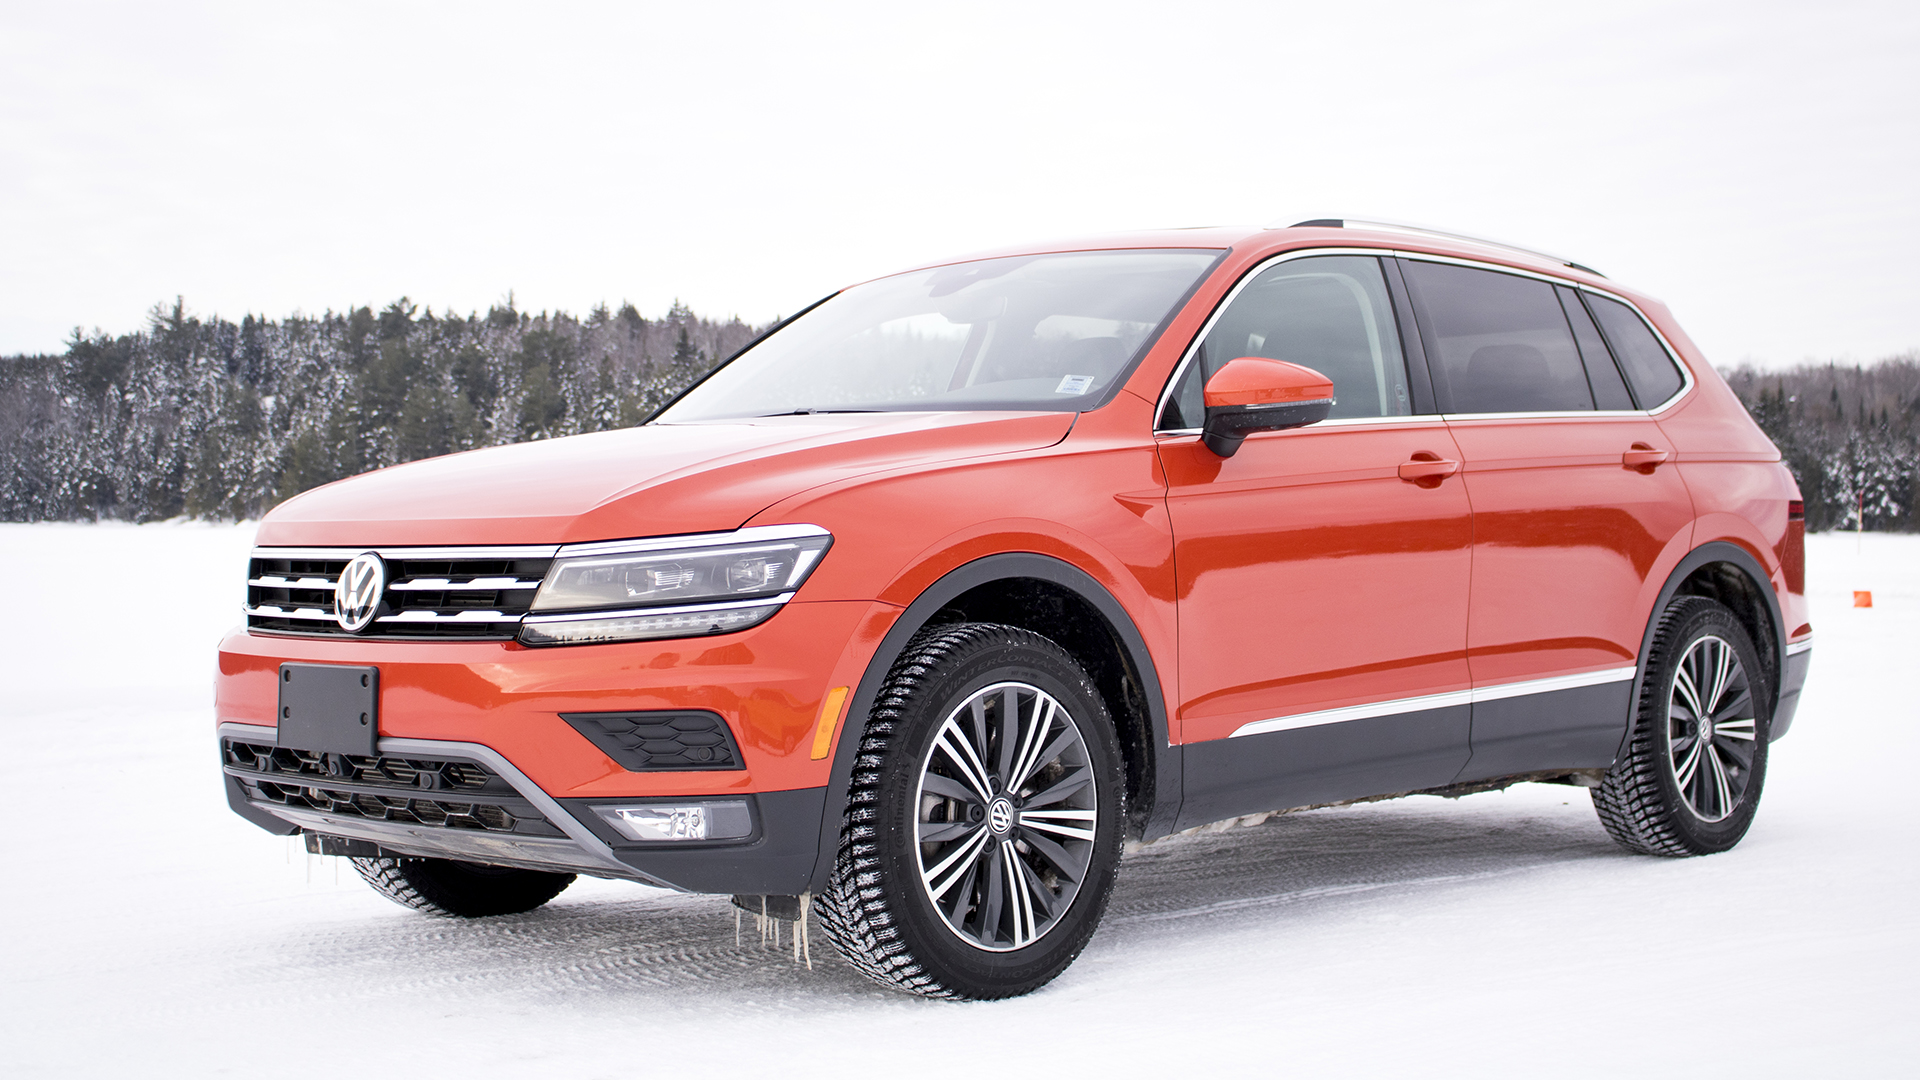 The 2018 Volkswagen Tiguan